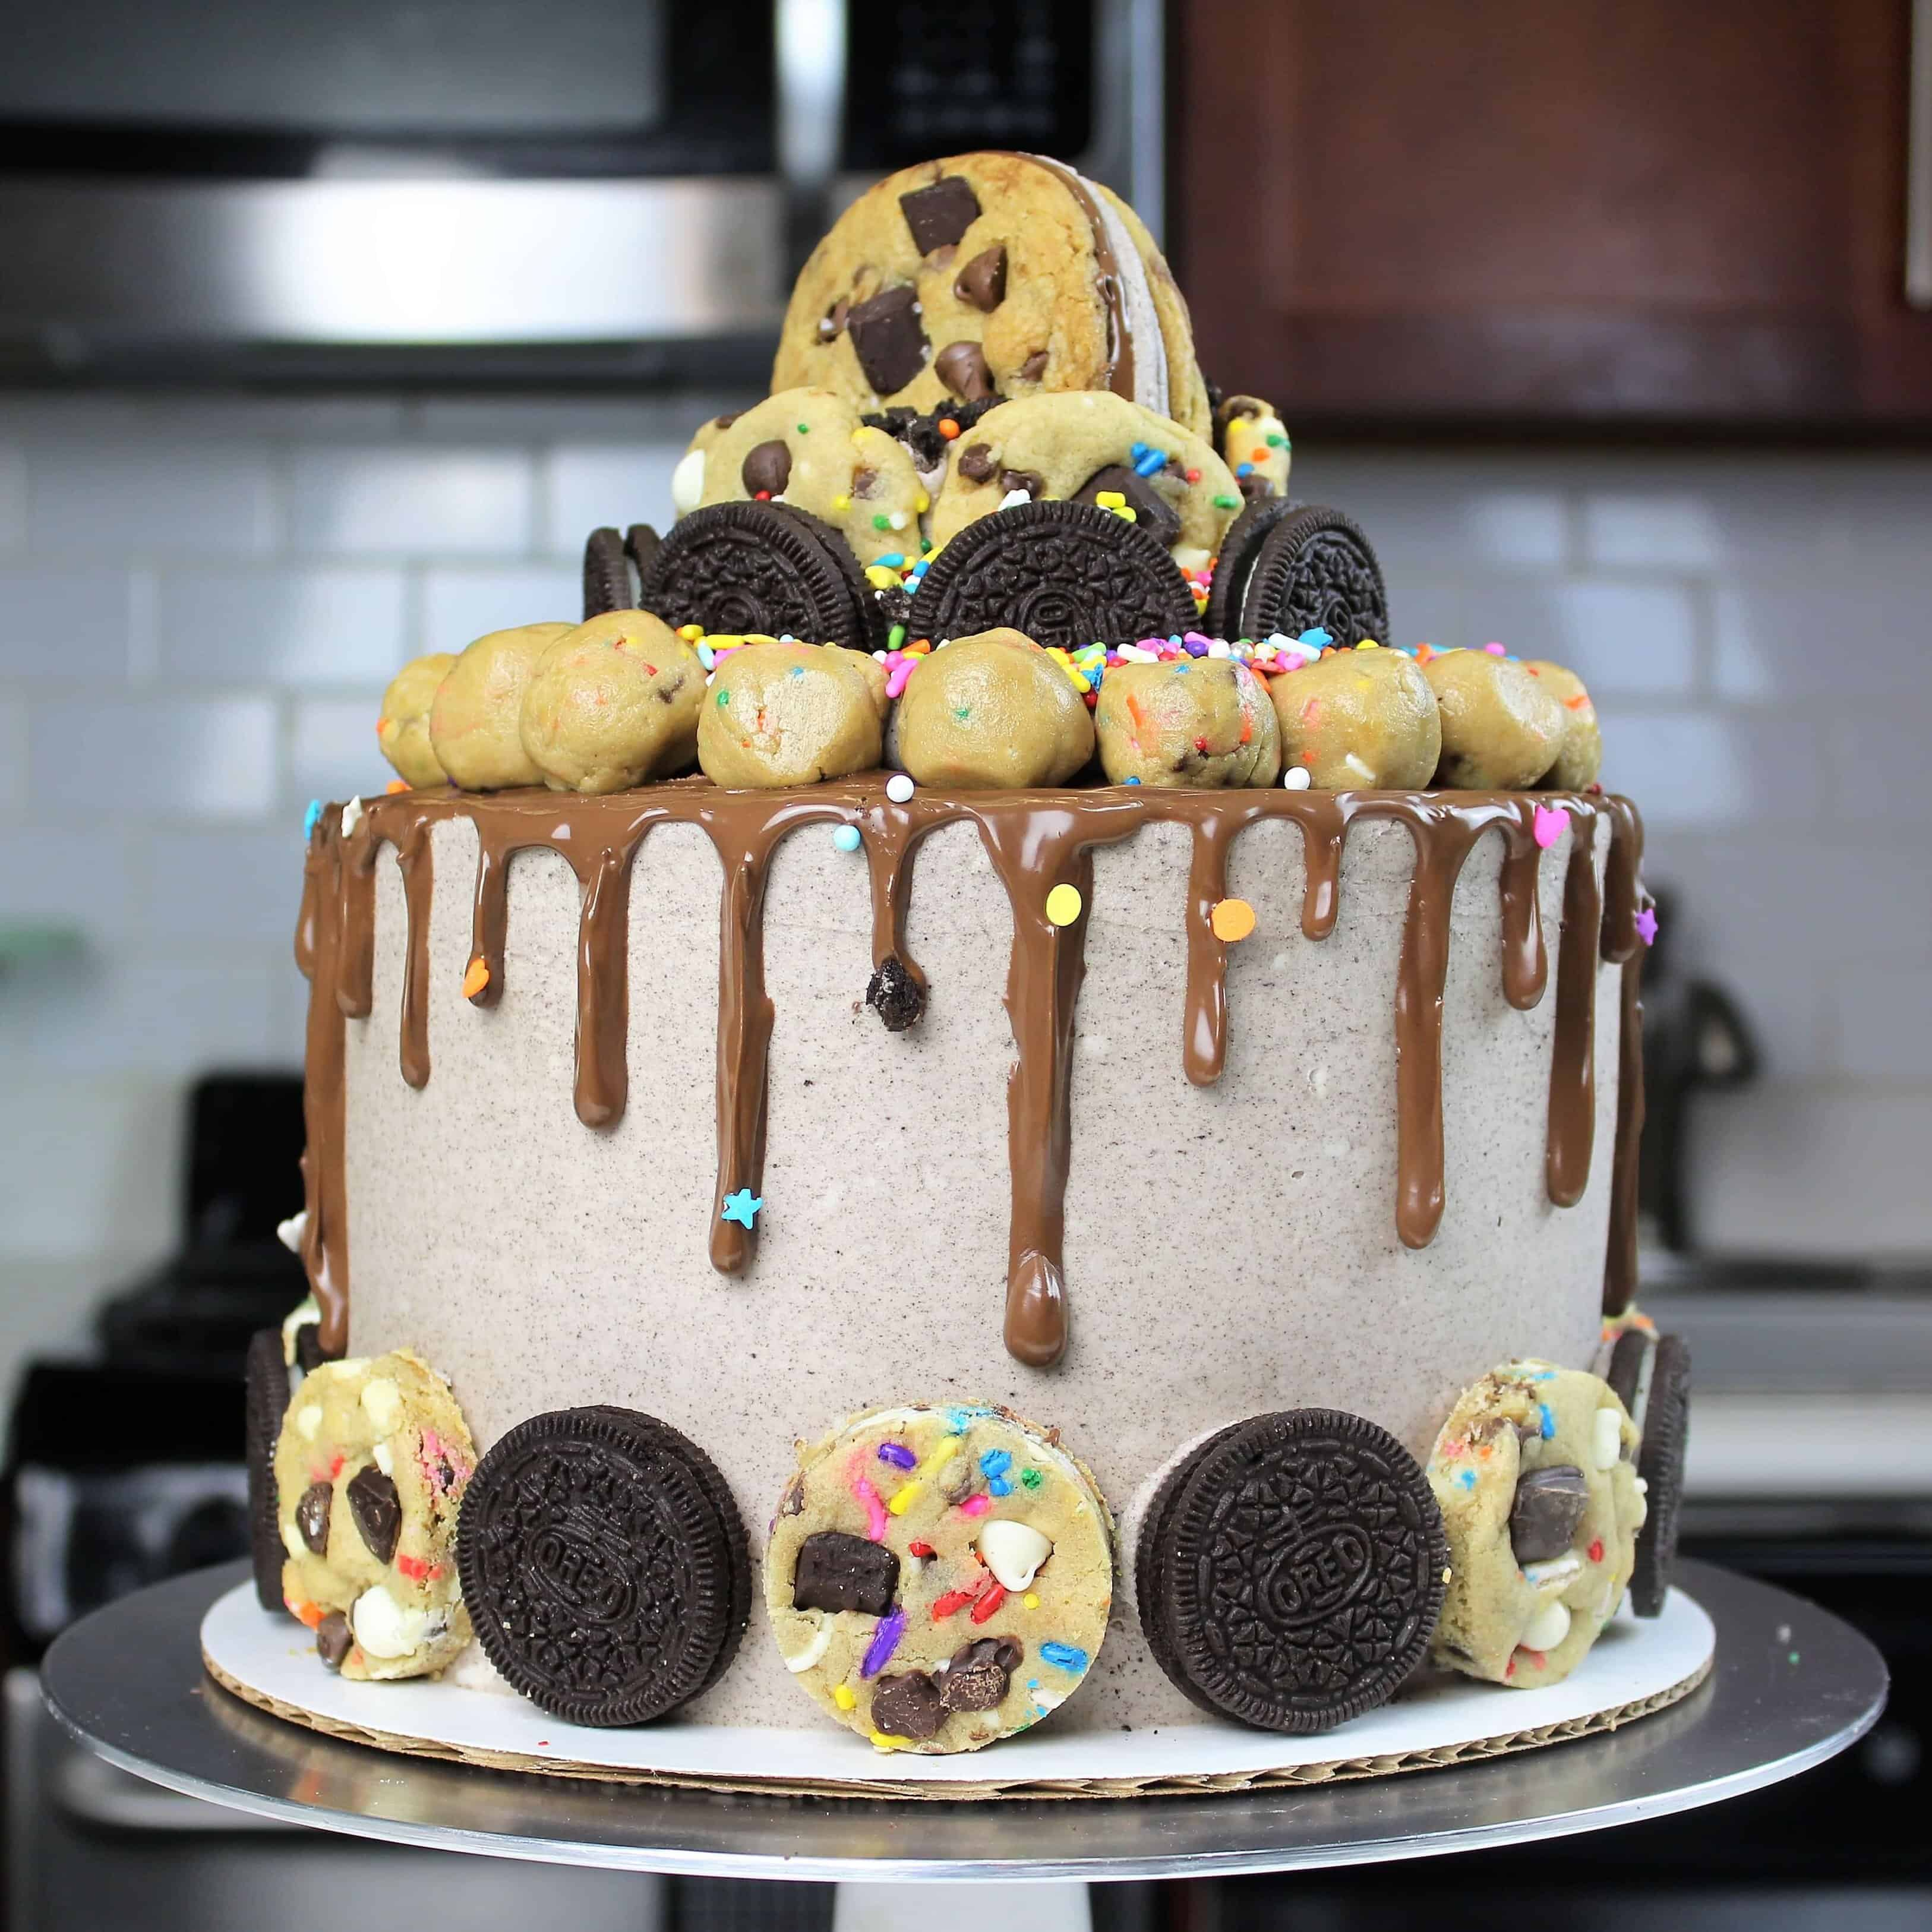 oreo cooke dough cake decorated with nutella buttercream and a nutella drip!